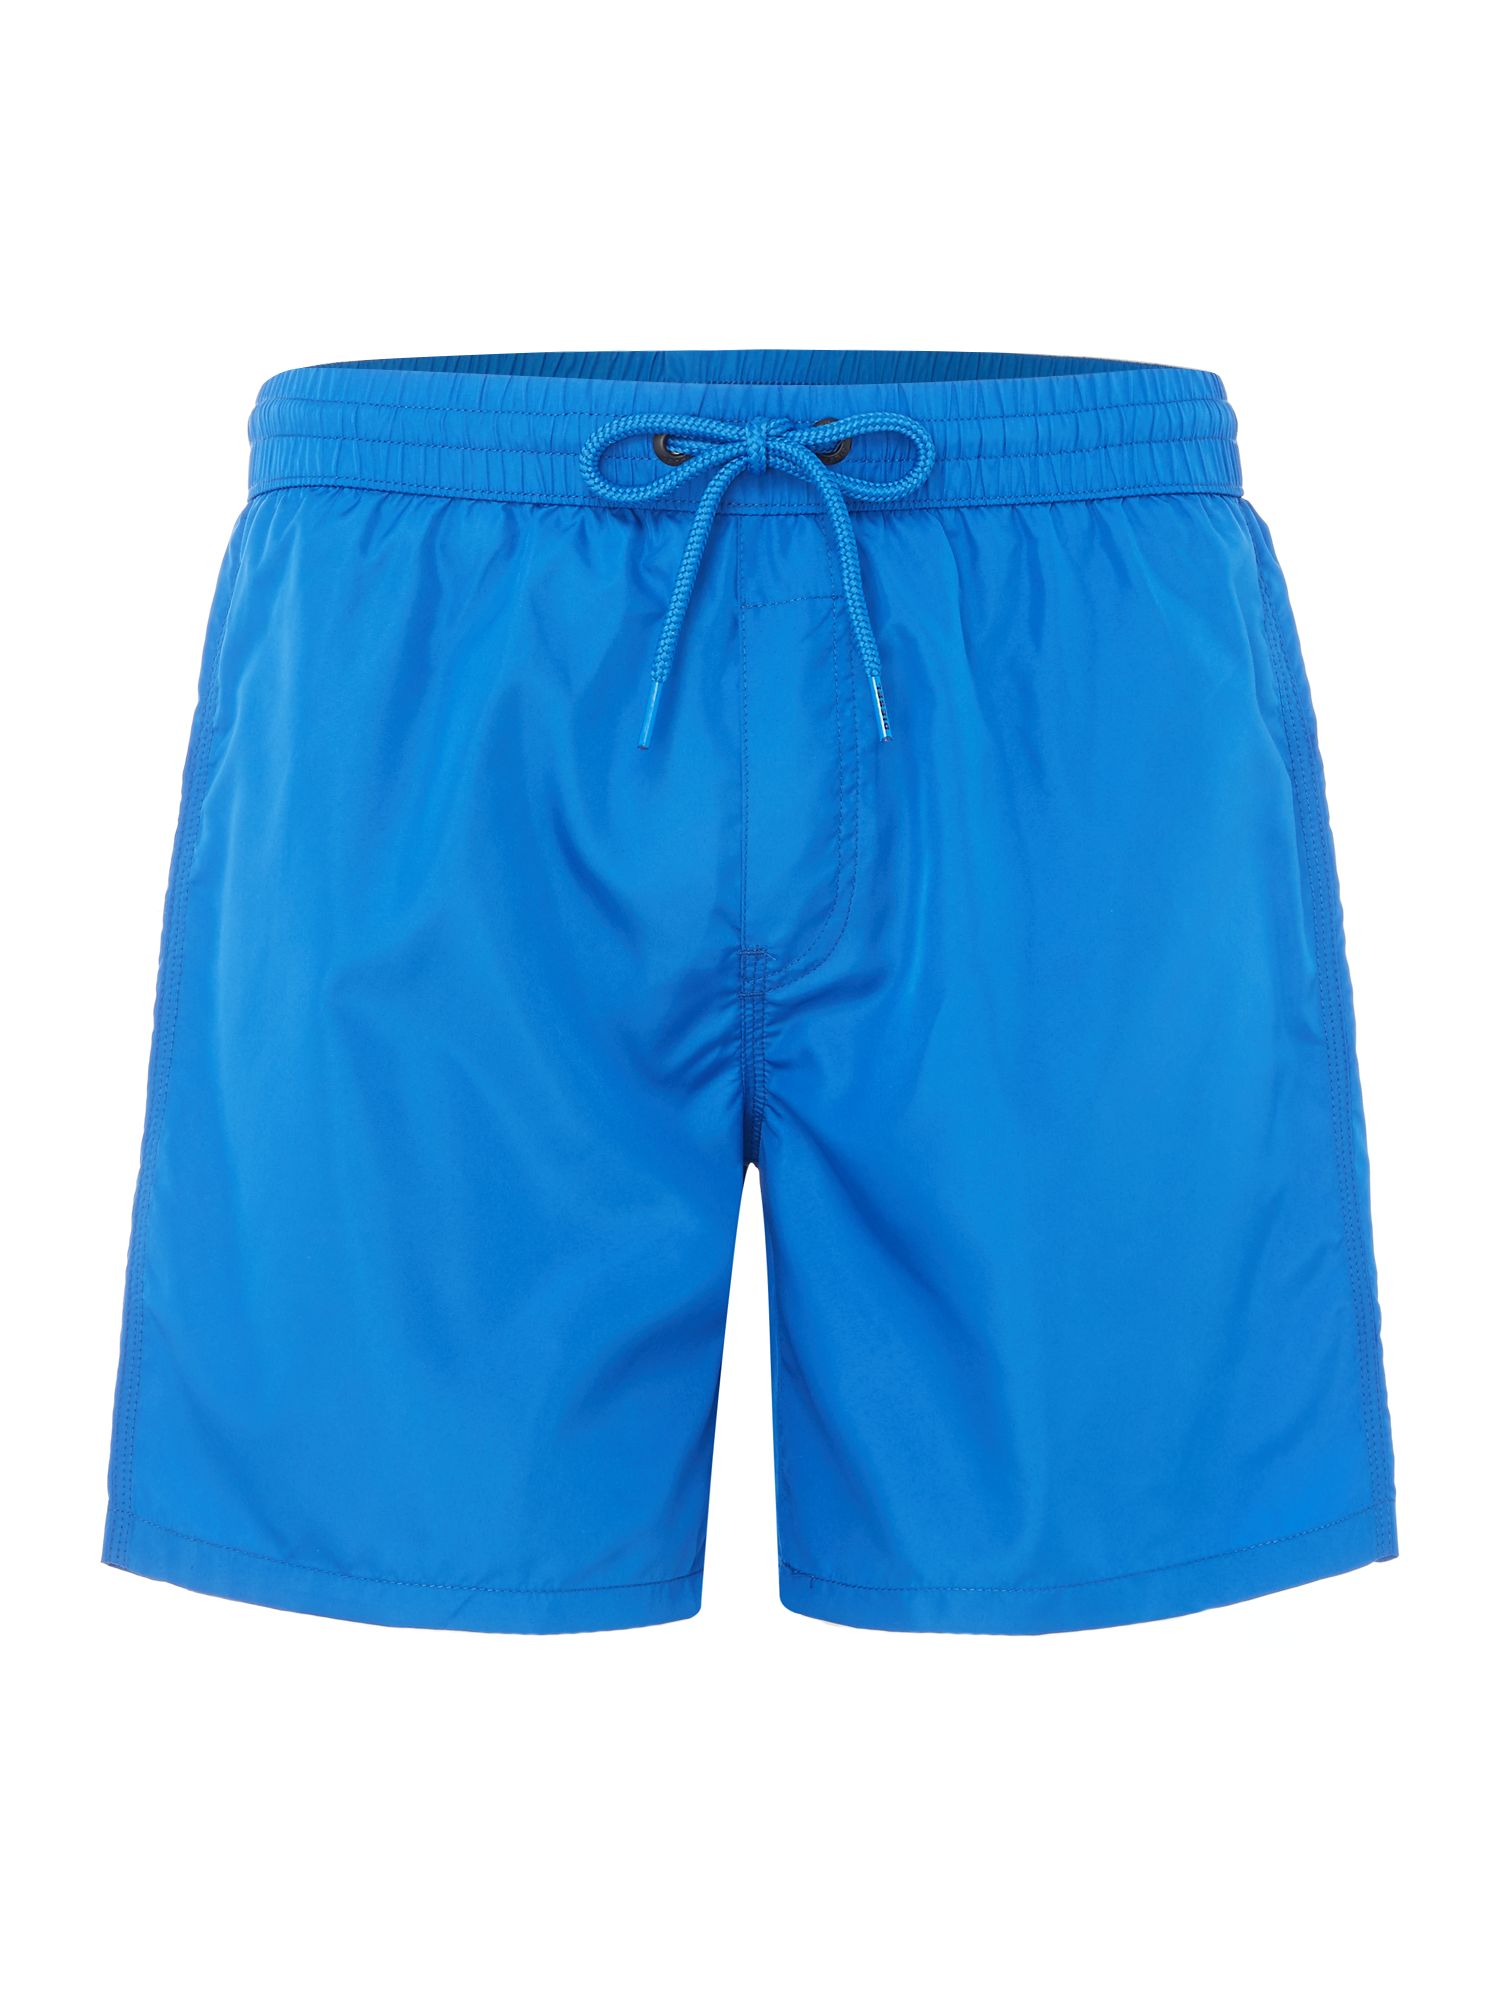 Men's Diesel Side Logo Swim Shorts, Blue